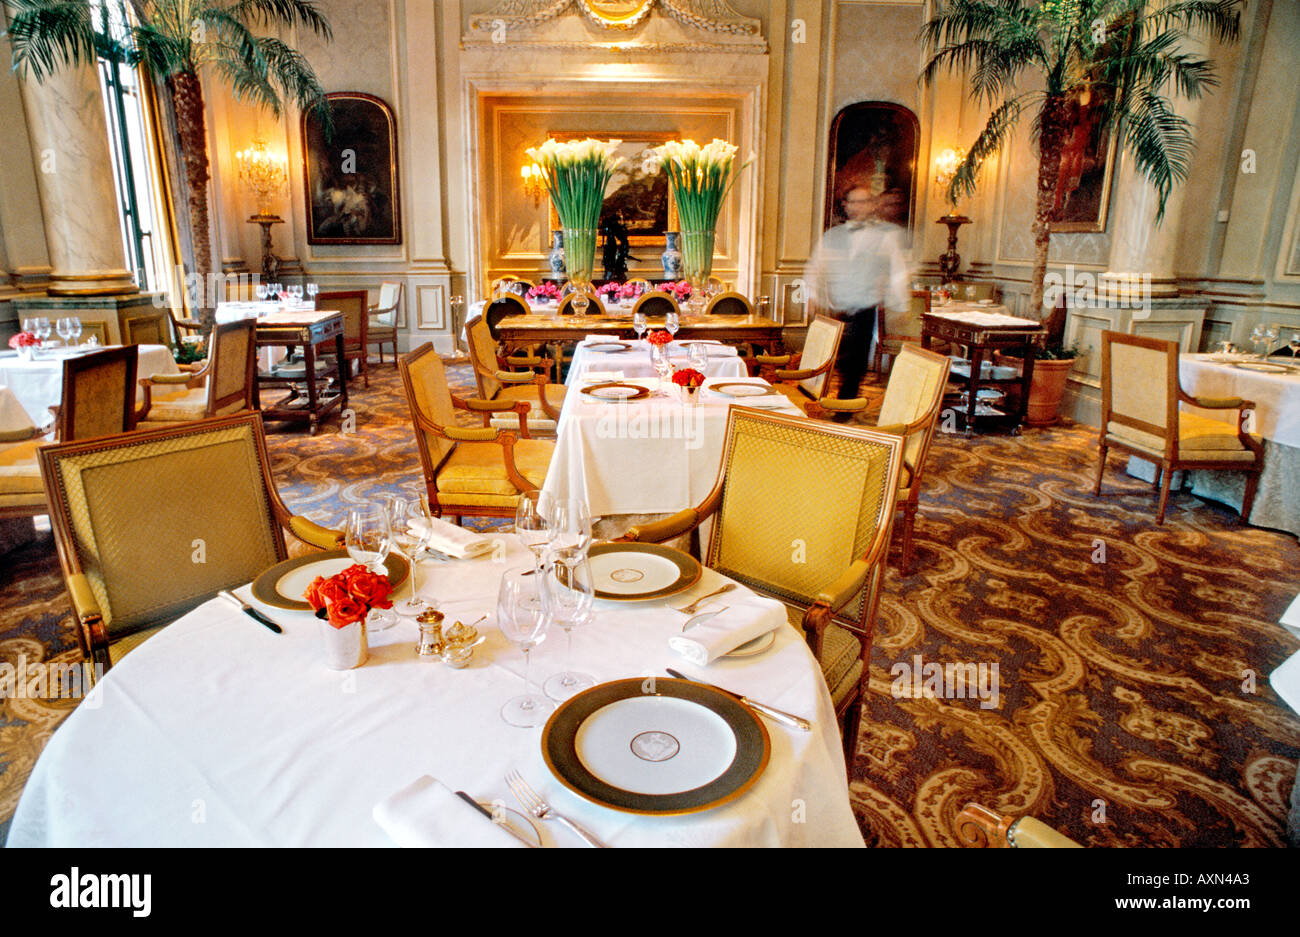 France Paris, Inside Fancy Dining Room, French Restaurant 'Le V' 'Le Cinq' Haute Cuisine, Luxury Hotel Four Seasons George V, european restaurant - Stock Image